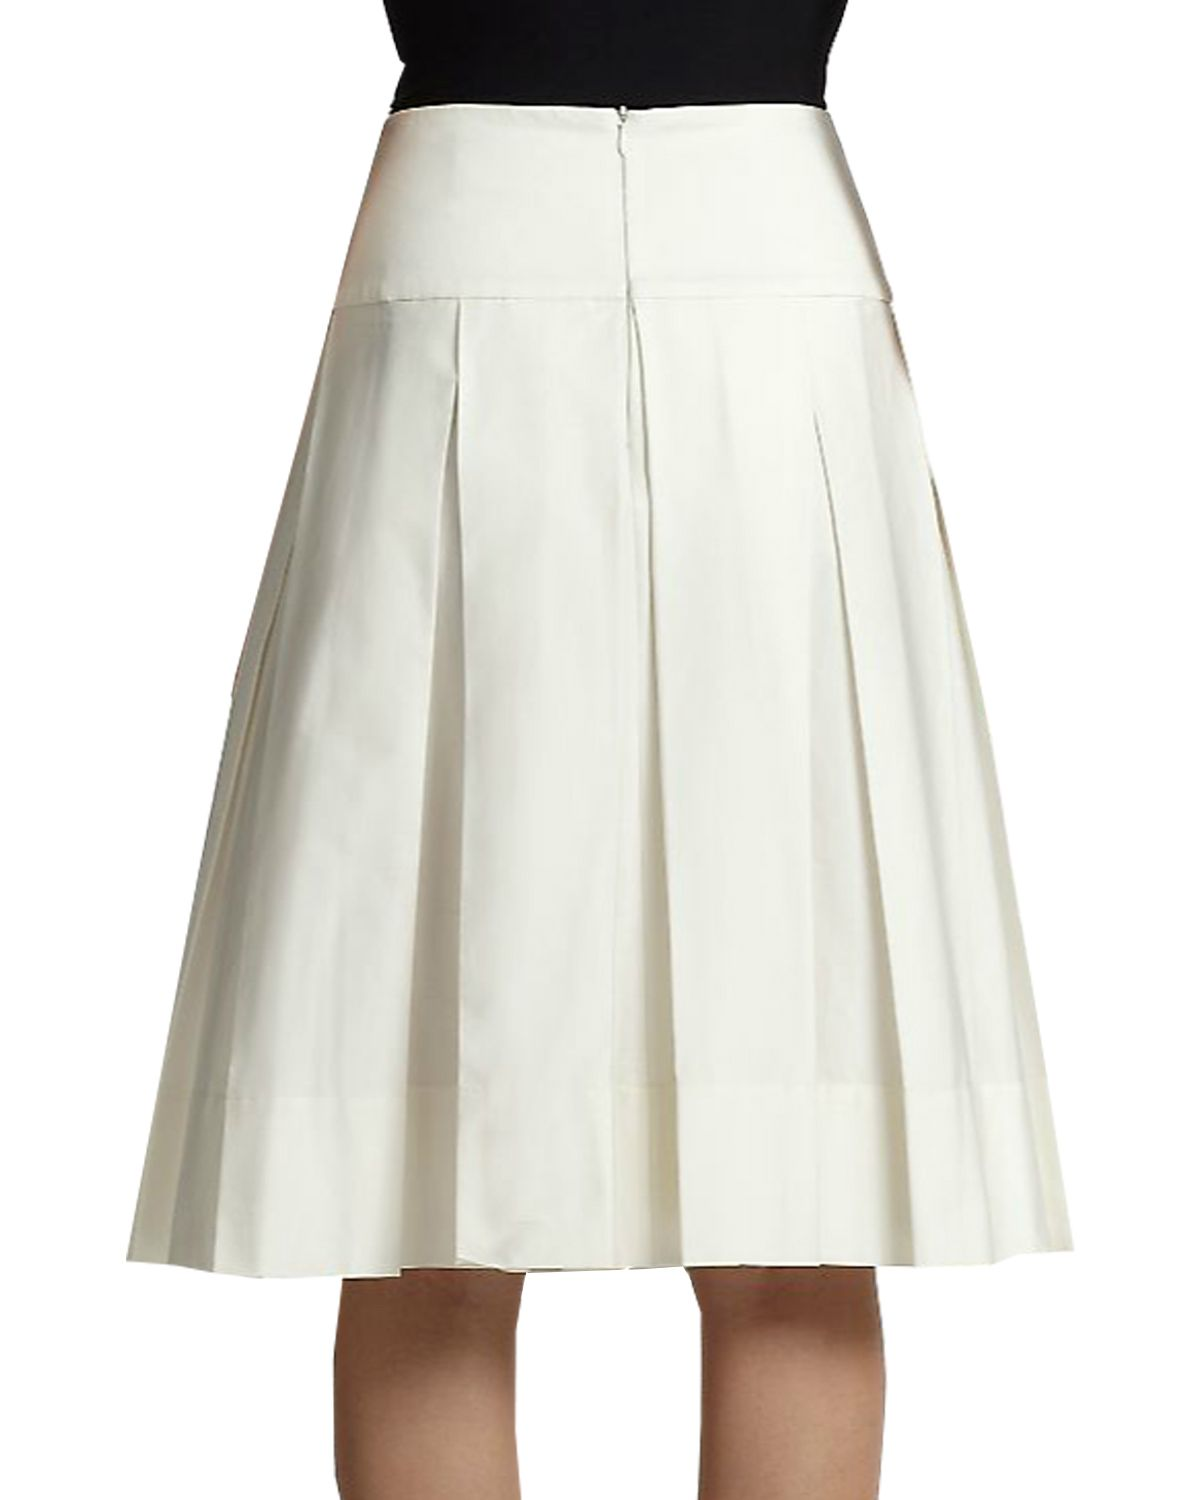 2d4fabc95e Box Pleated Skirt with Yoke in 2019 | Sewing inspirations fall and ...